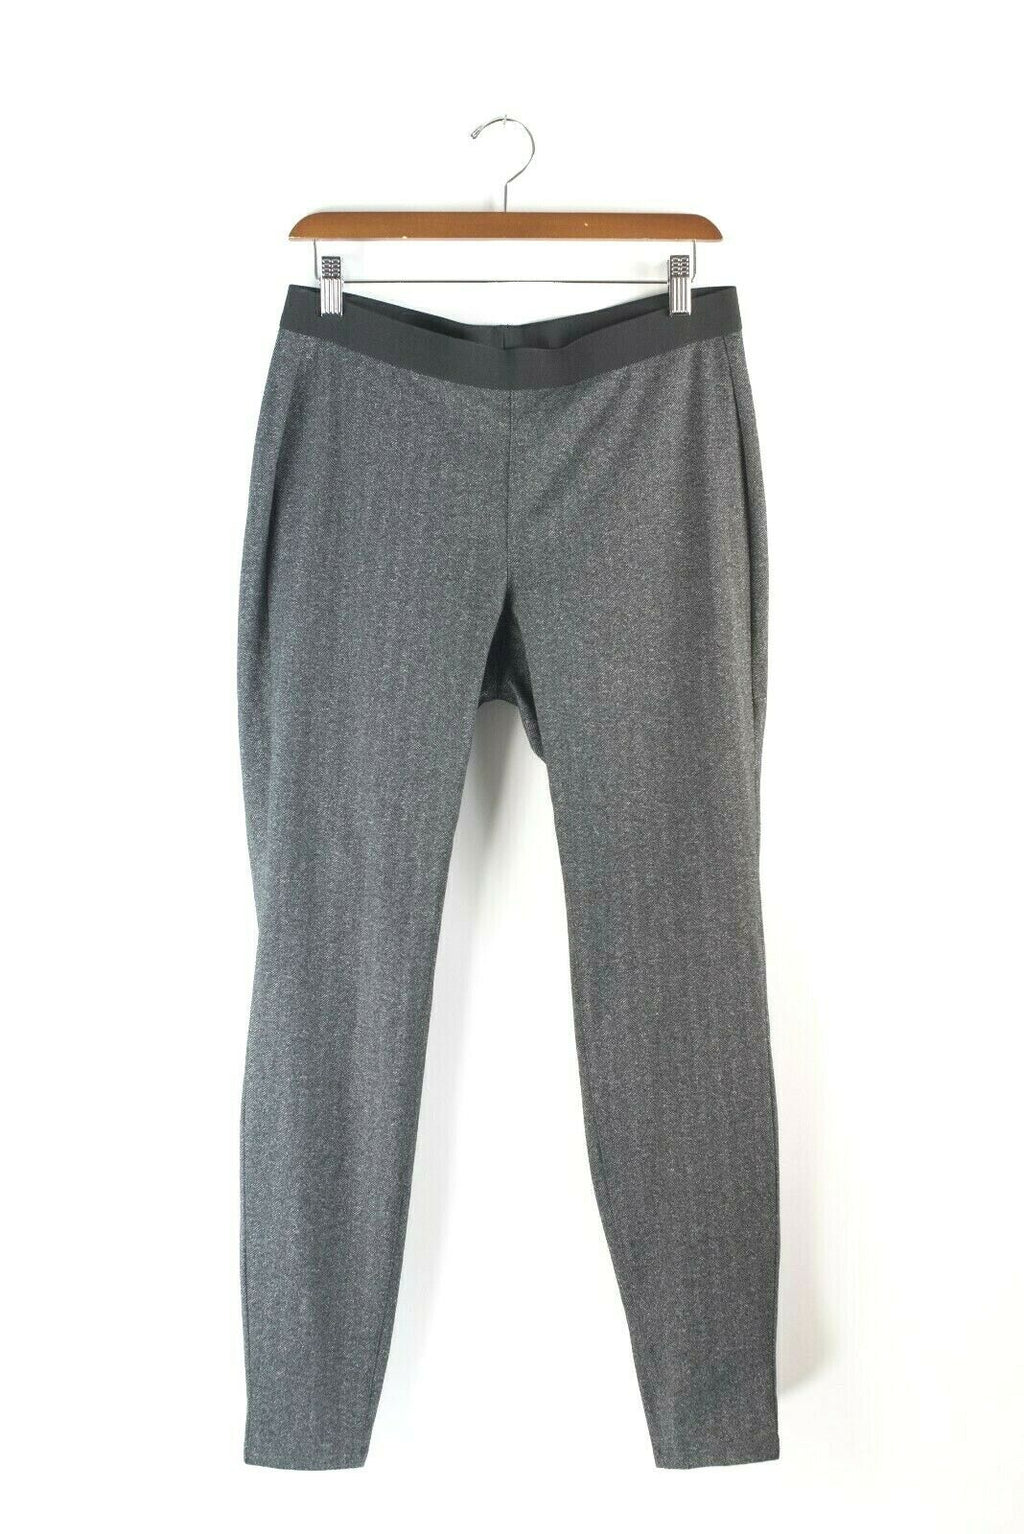 Eileen Fisher Small Grey Pants Herringbone Jersey Elastic Waist Stretch Leggings